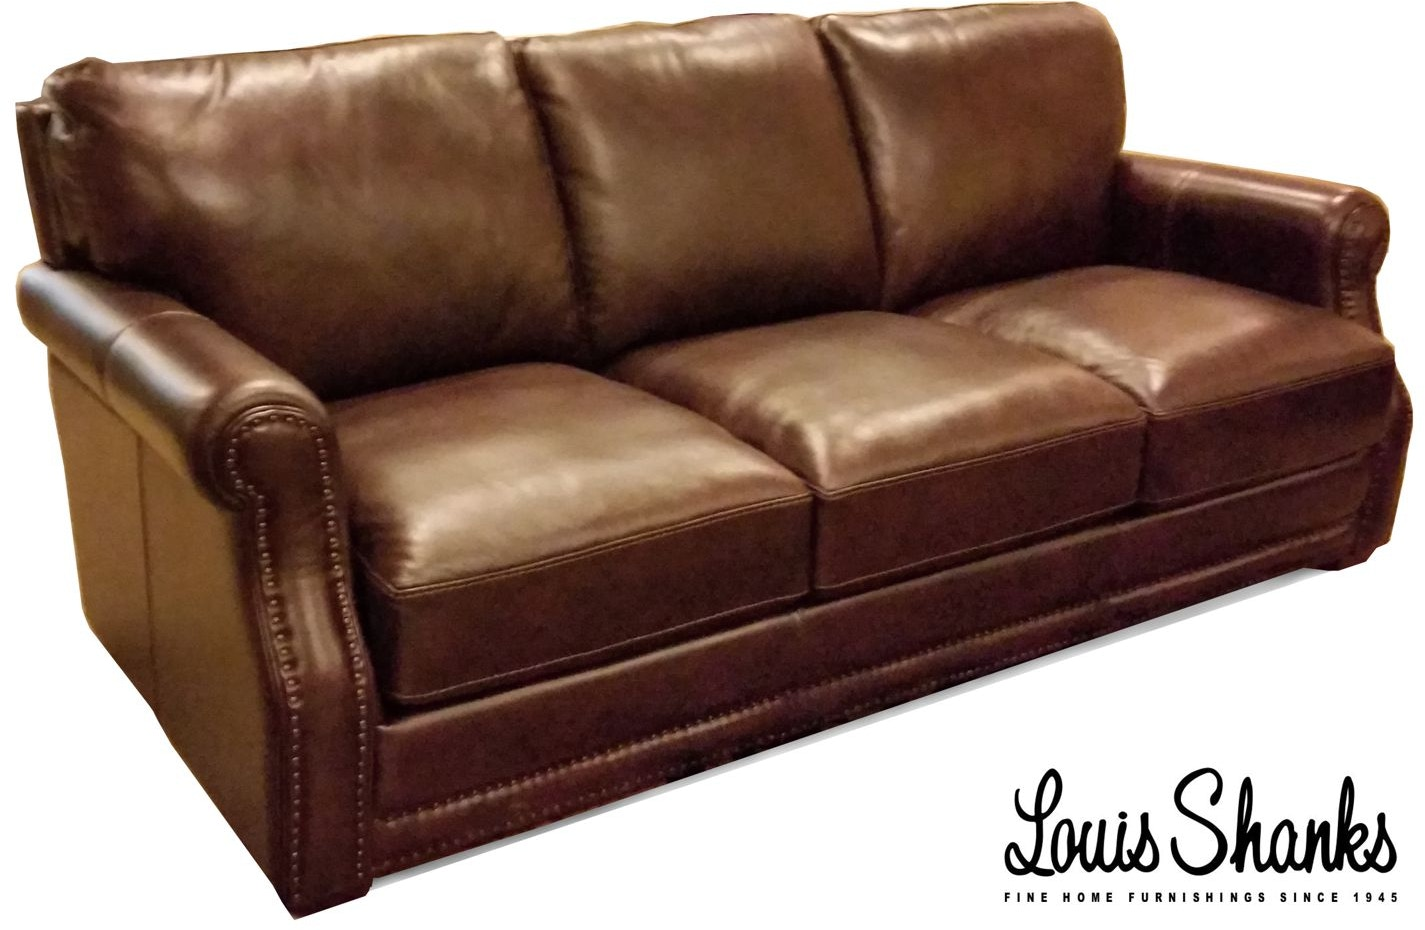 Flexsteel Living Room Chandler Leather Sofa 1365-31 - Louis Shanks